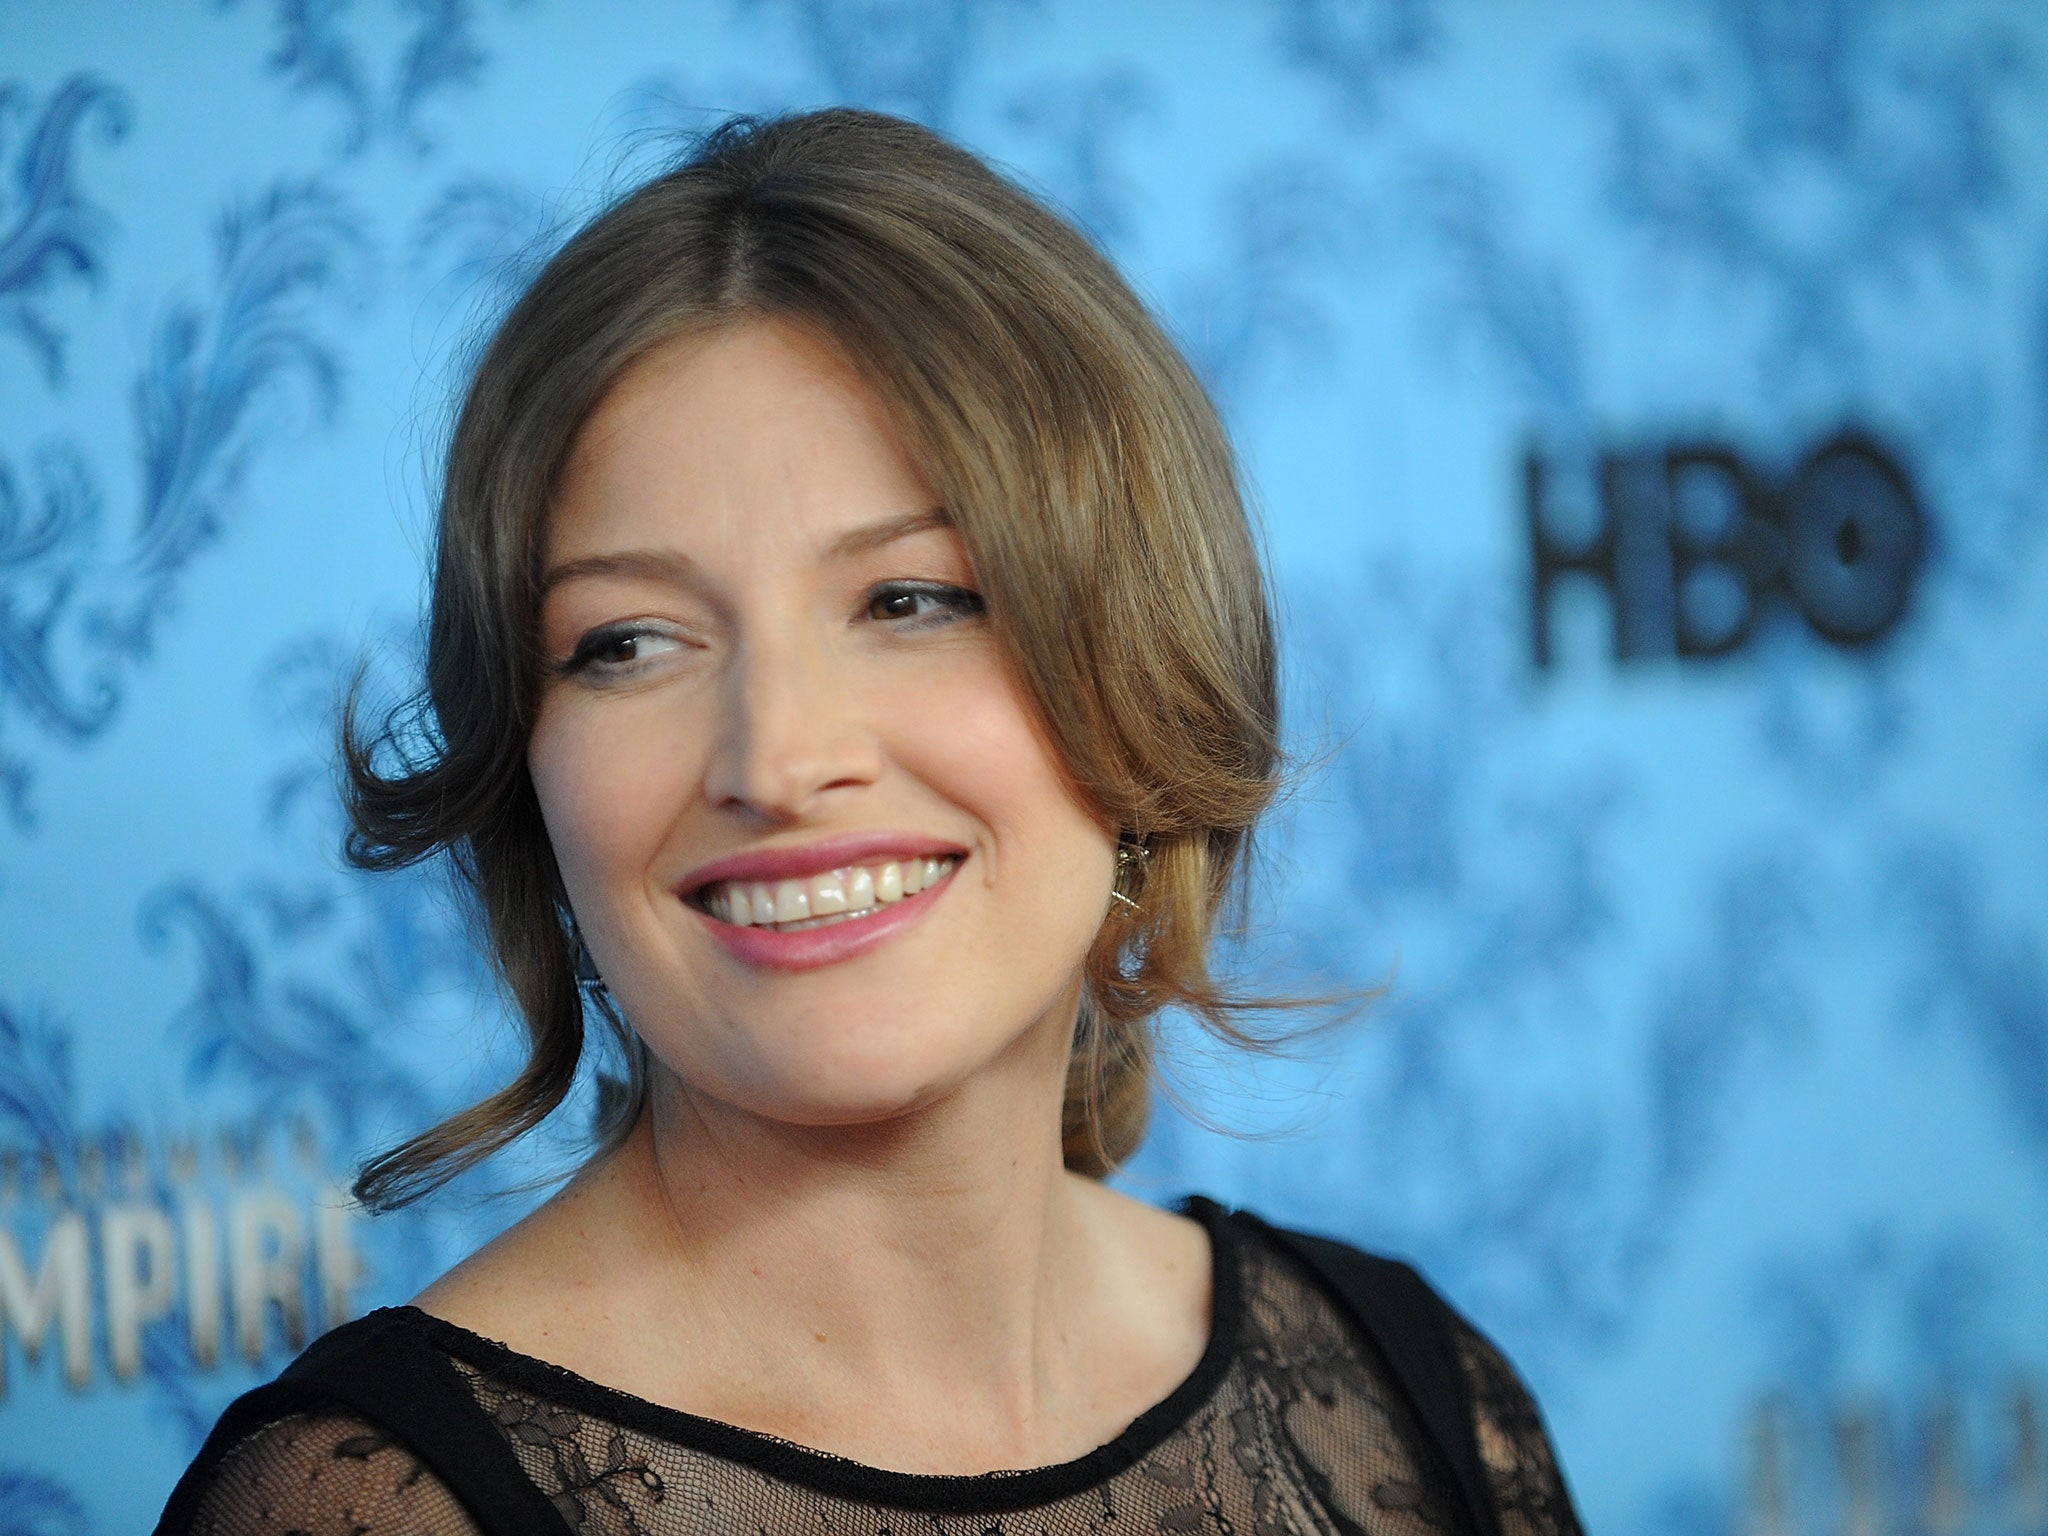 Kelly macdonald free porn